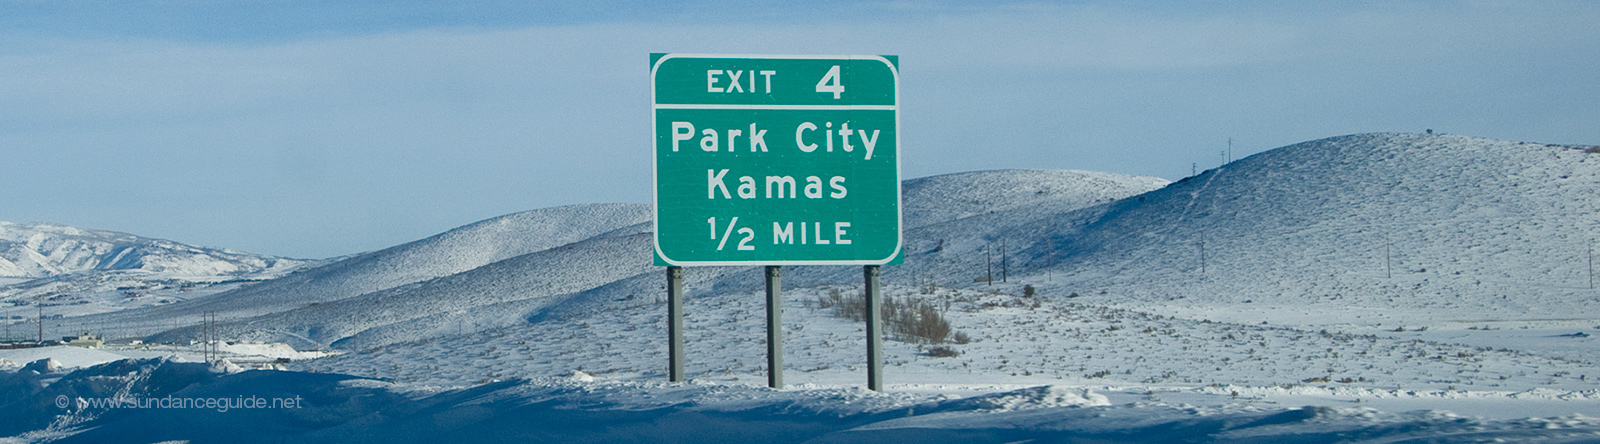 A picture of a freeway exit sign showing Park City